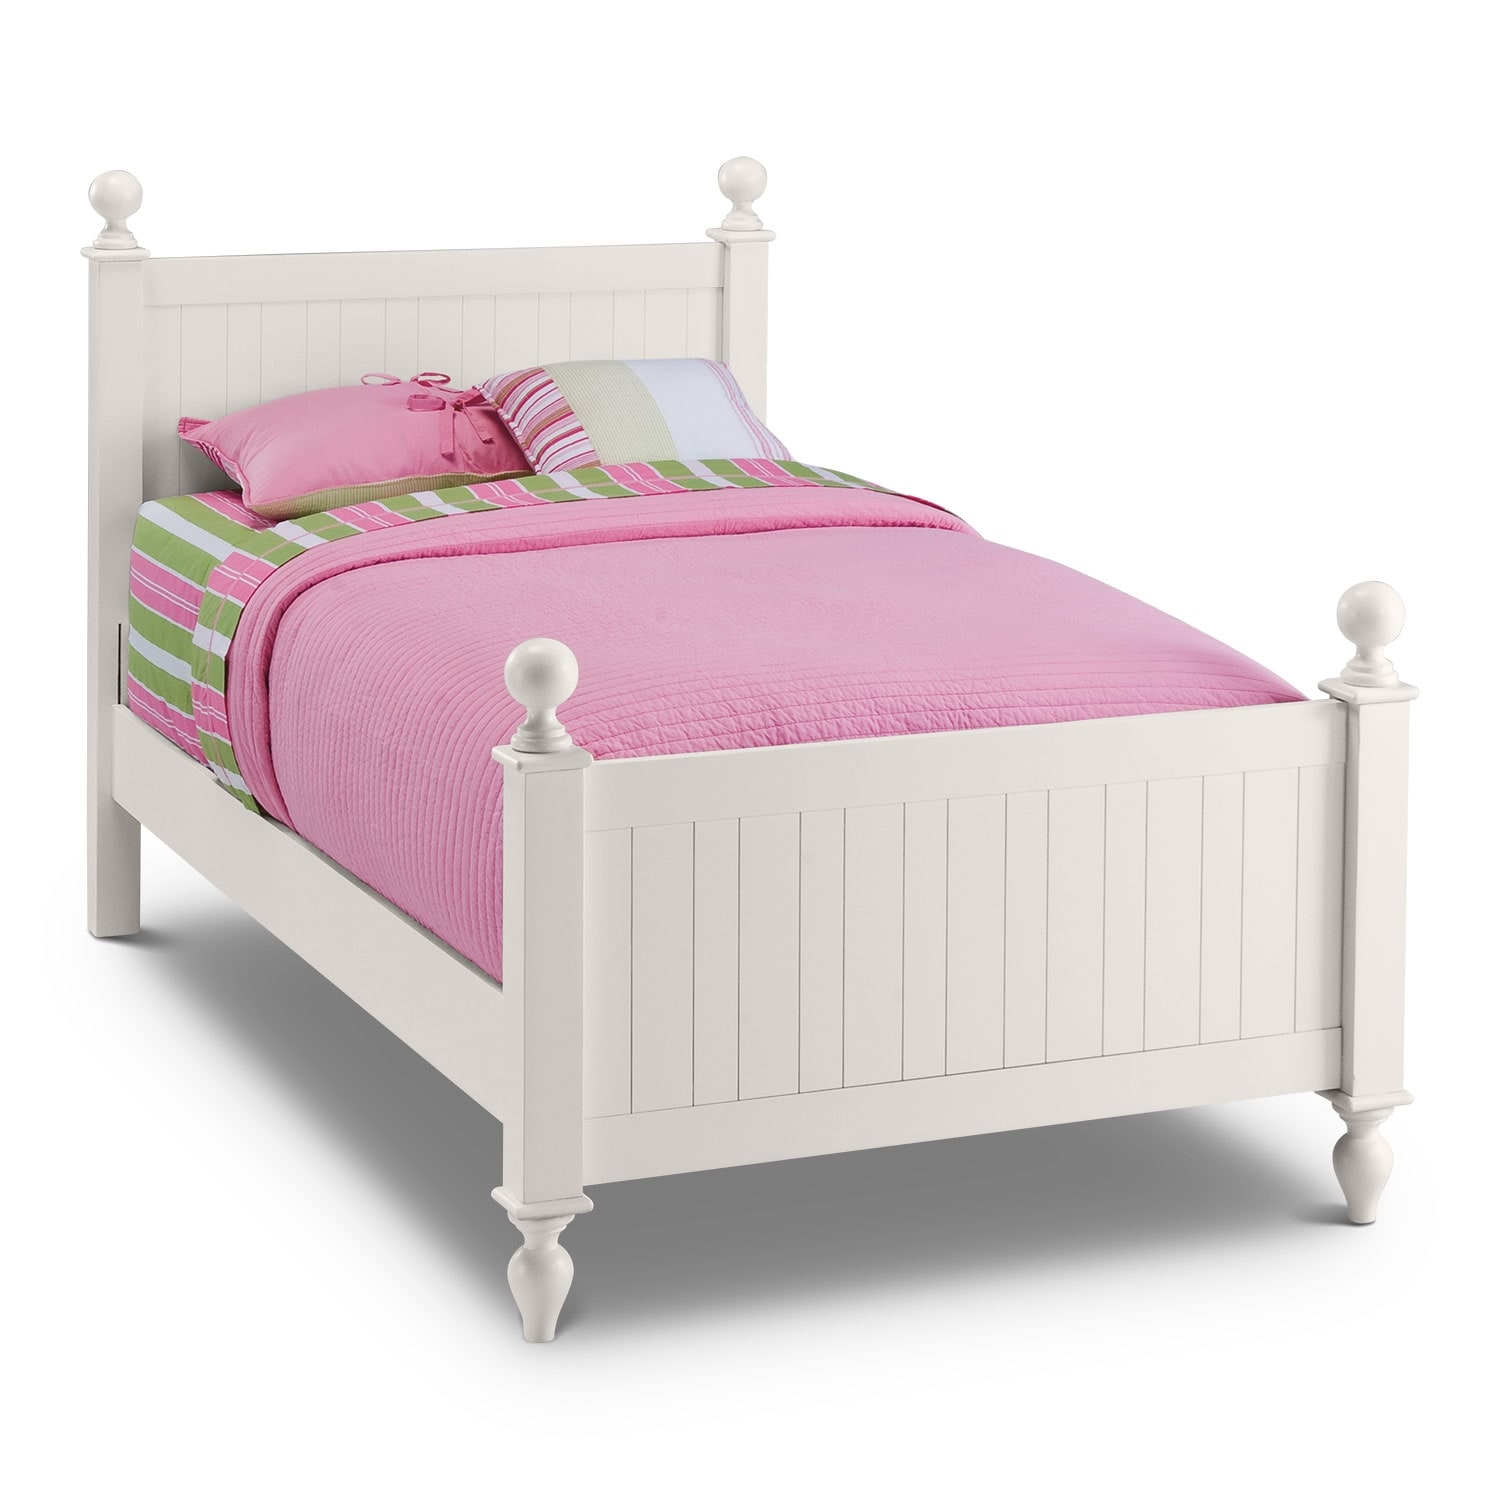 White Double Bed With Mattress Colorworks Twin Bed White Value City Furniture And